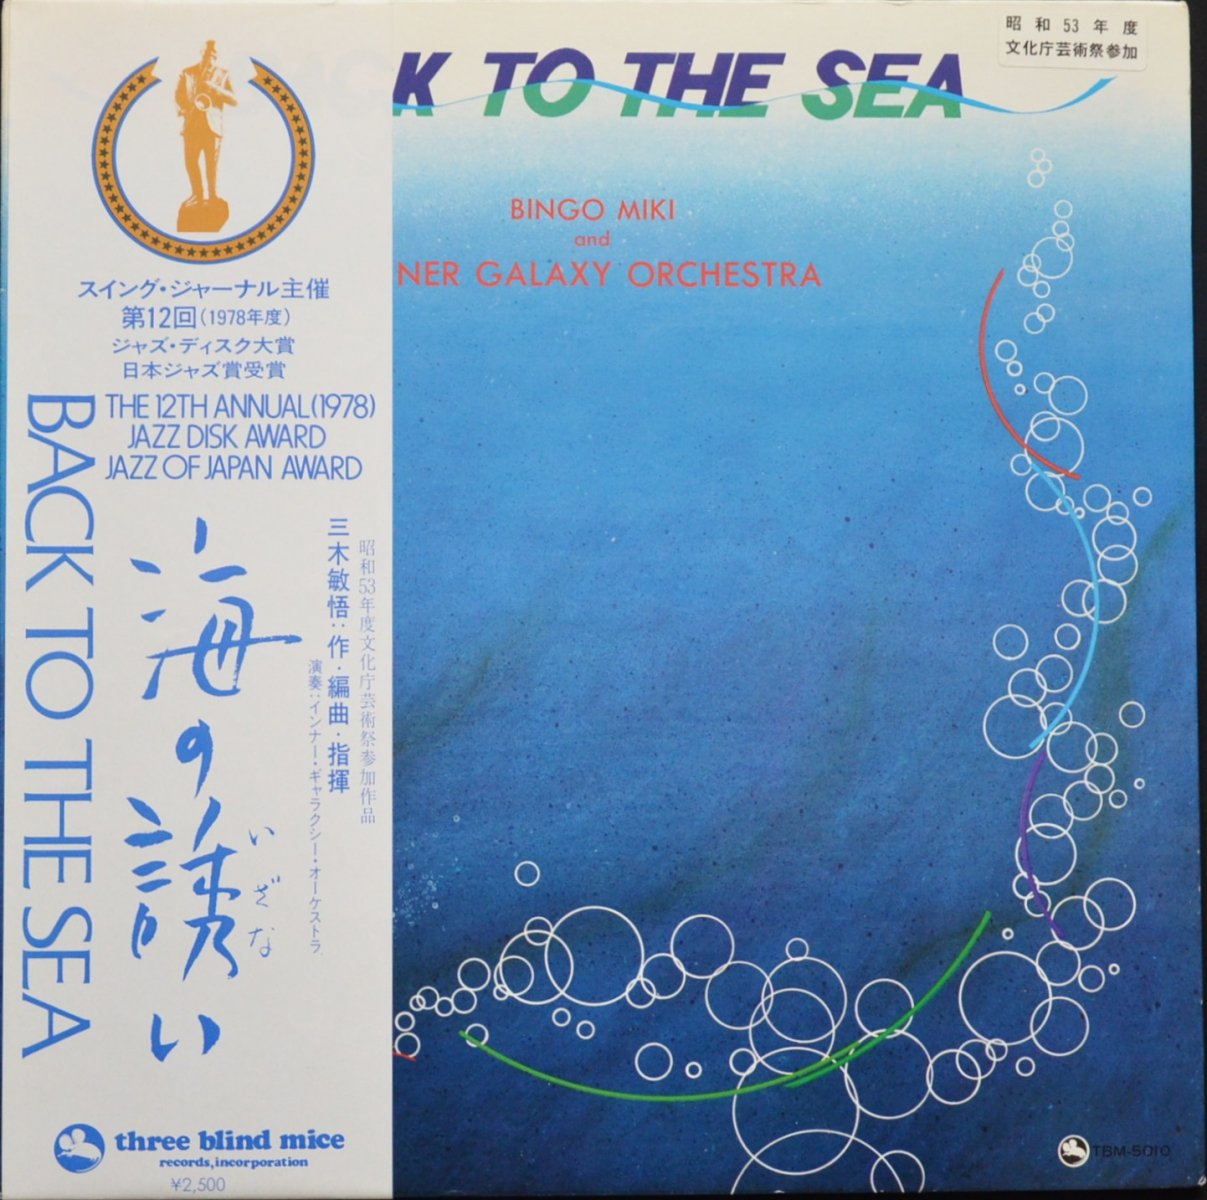 三木敏悟 BINGO MIKI AND INNERGALAXY ORCHESTRA / 海の誘い BACK TO THE SEA (LP)